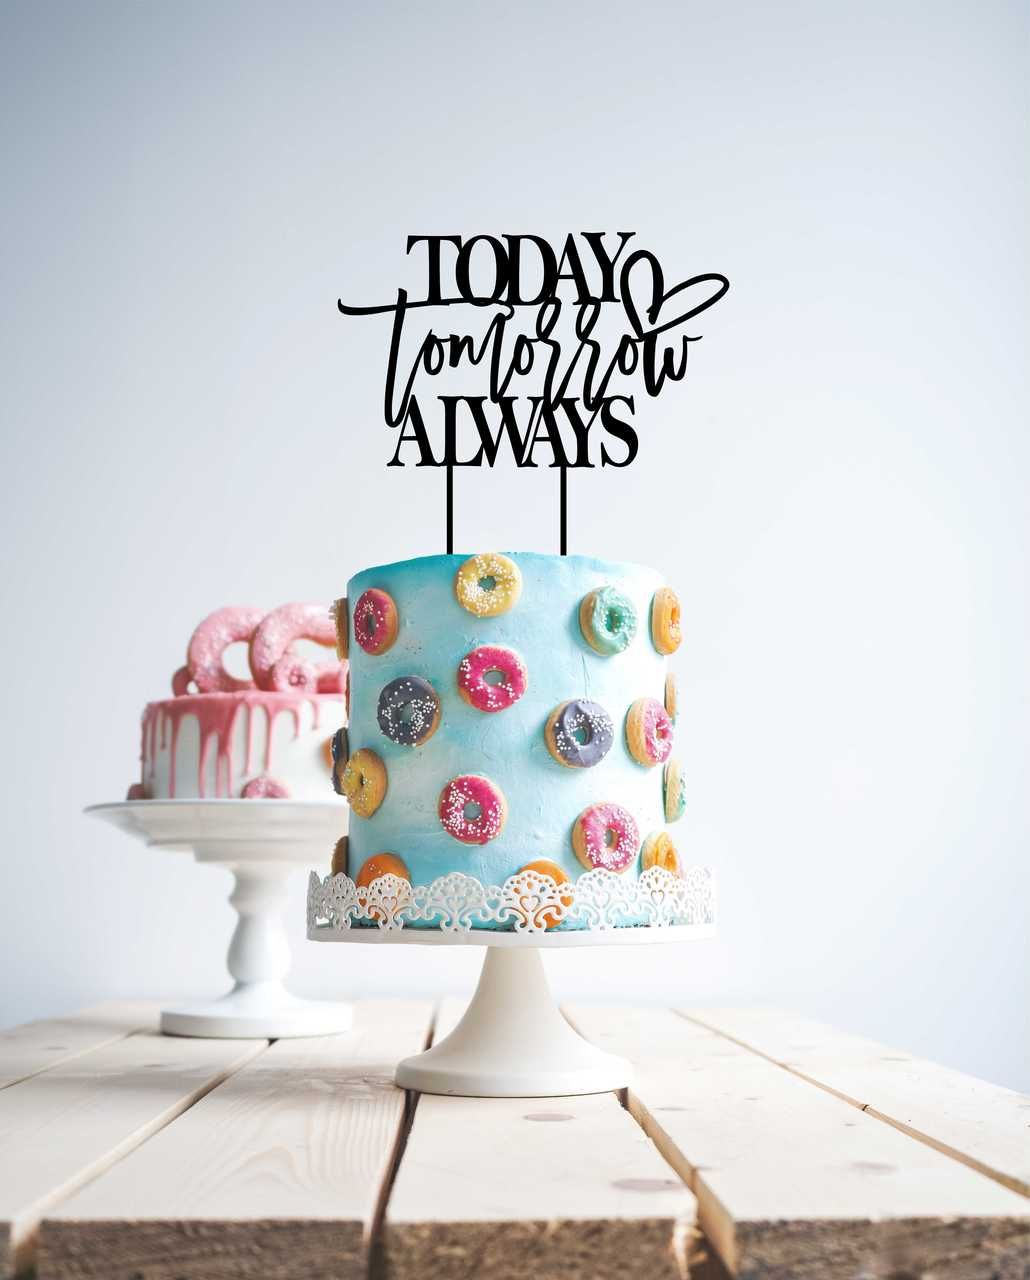 Today, tomorrow and always - Wood Cake Topper / wooden topper